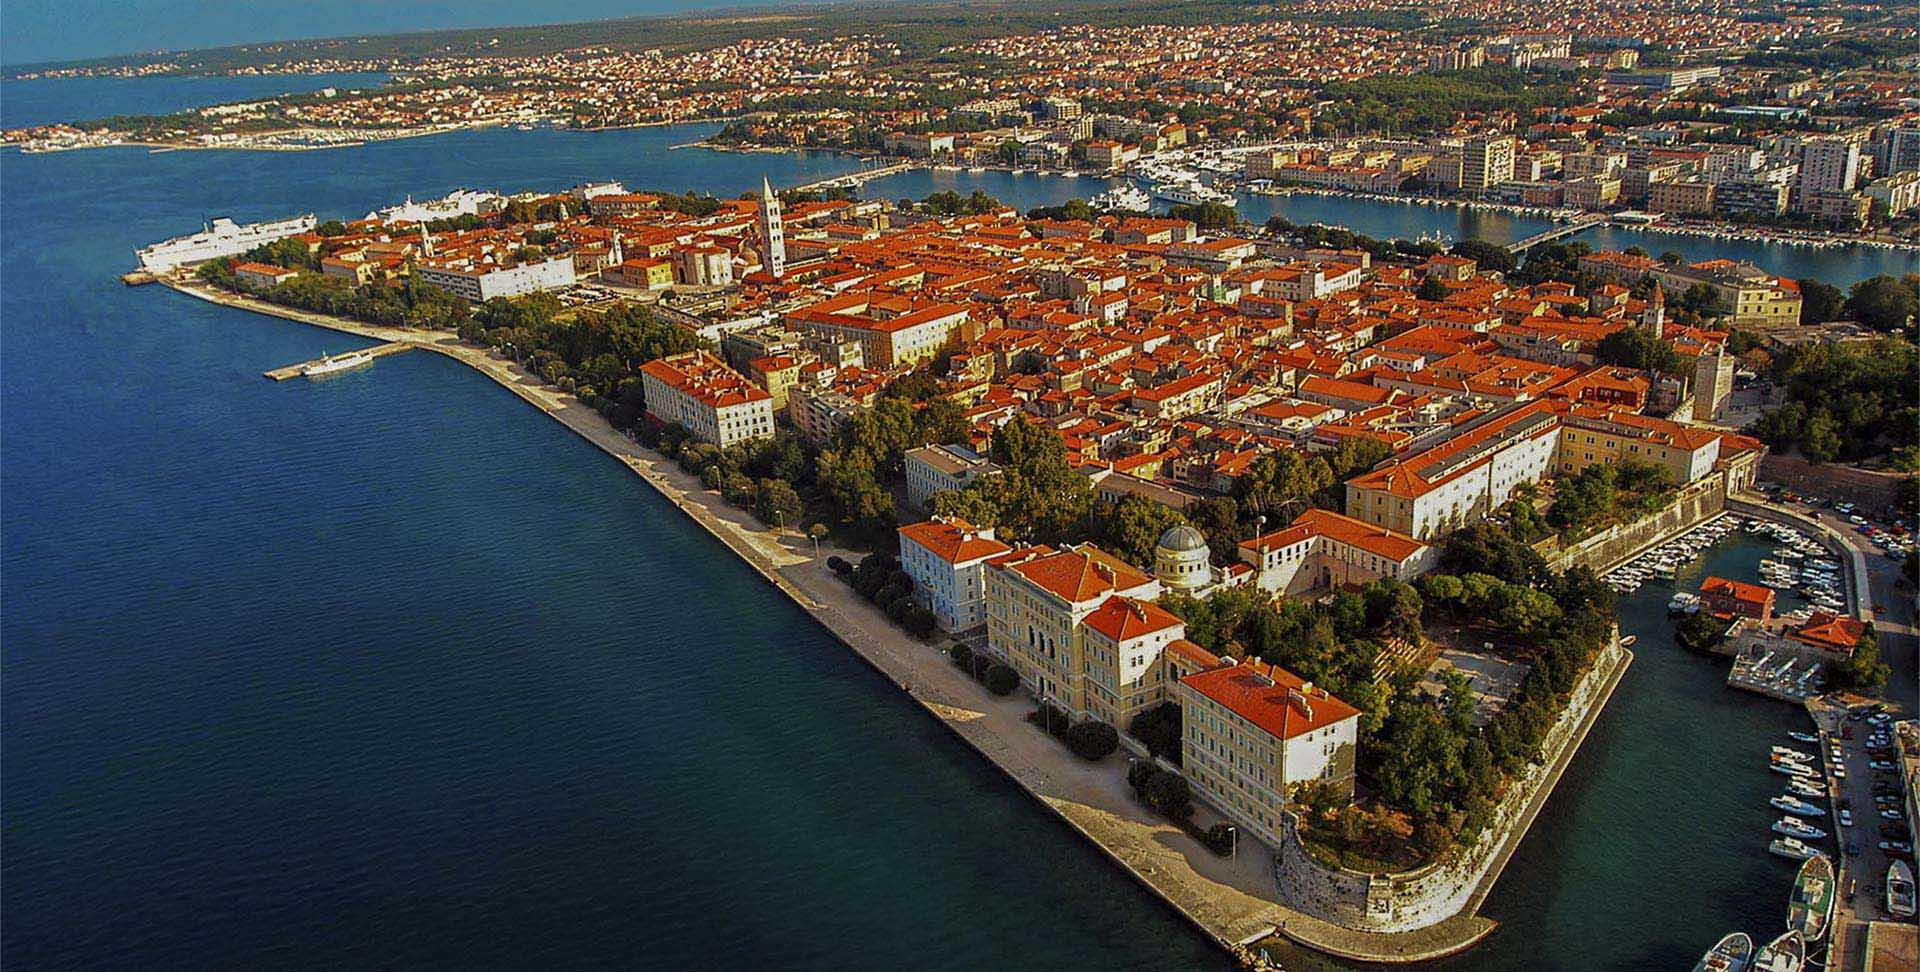 Croatia Zadar Old Town From Air